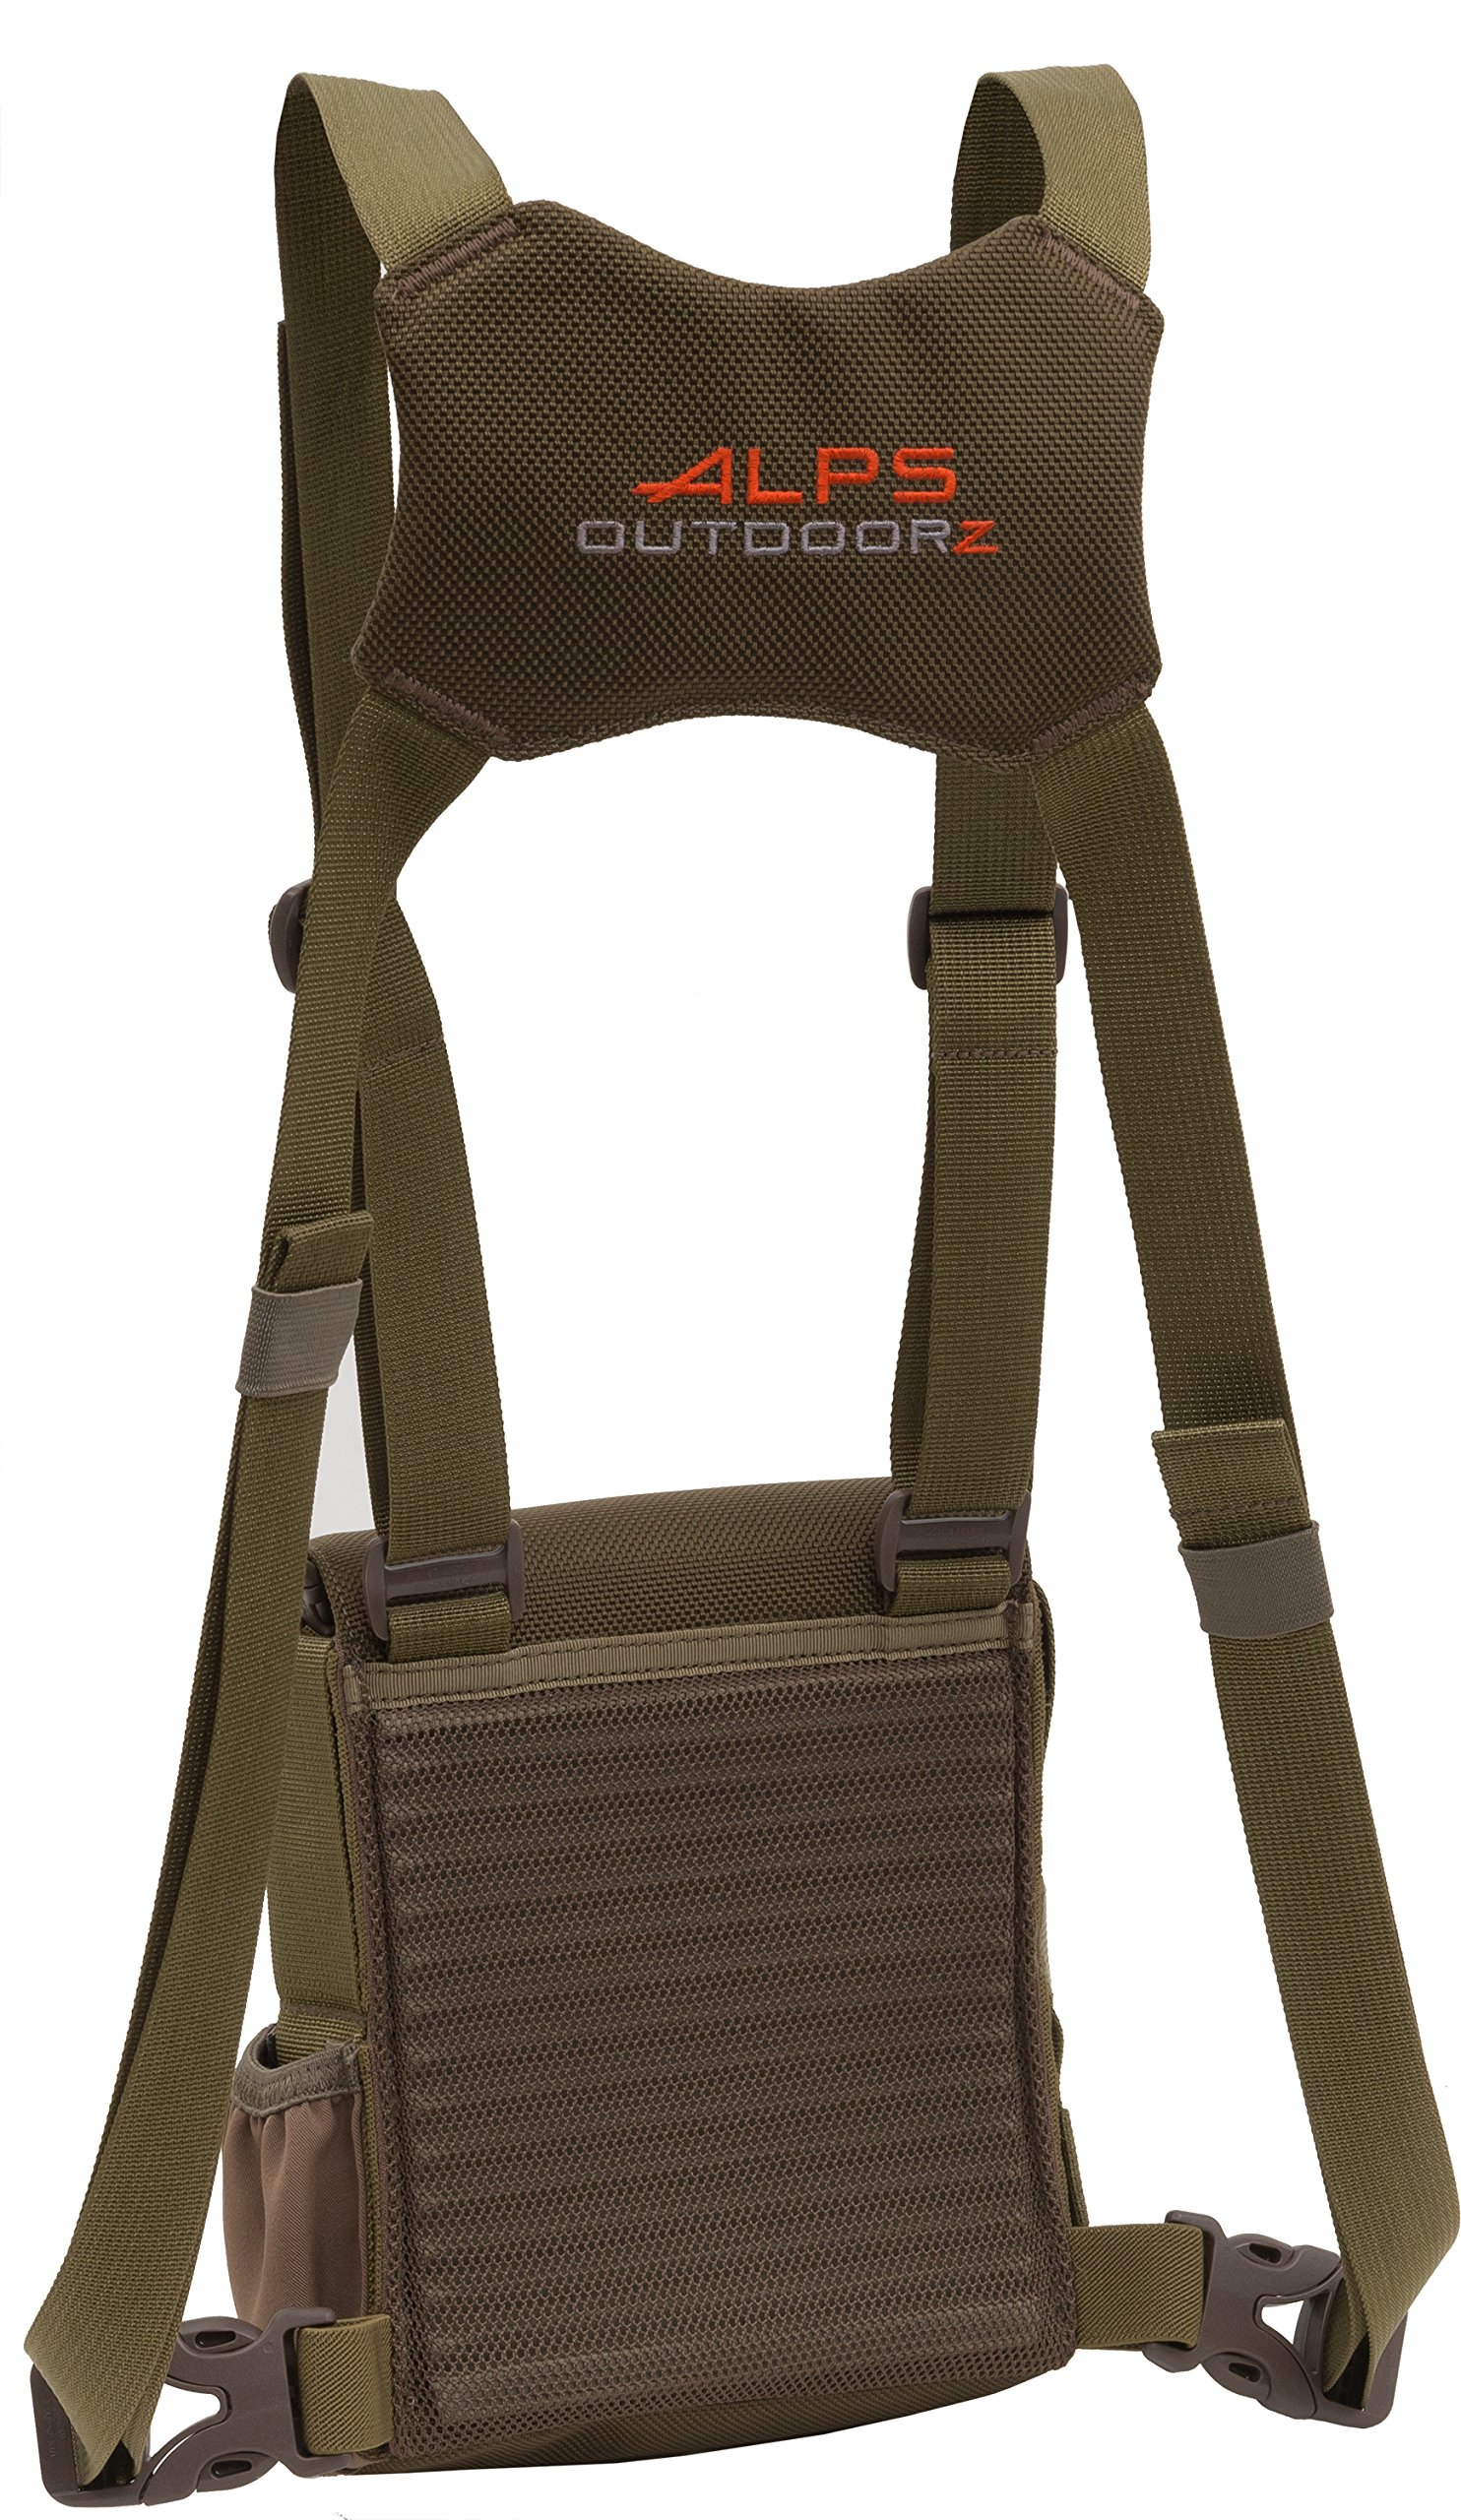 ALPS OutdoorZ Extreme Bino Harness X by ALPS OutdoorZ (Image #2)